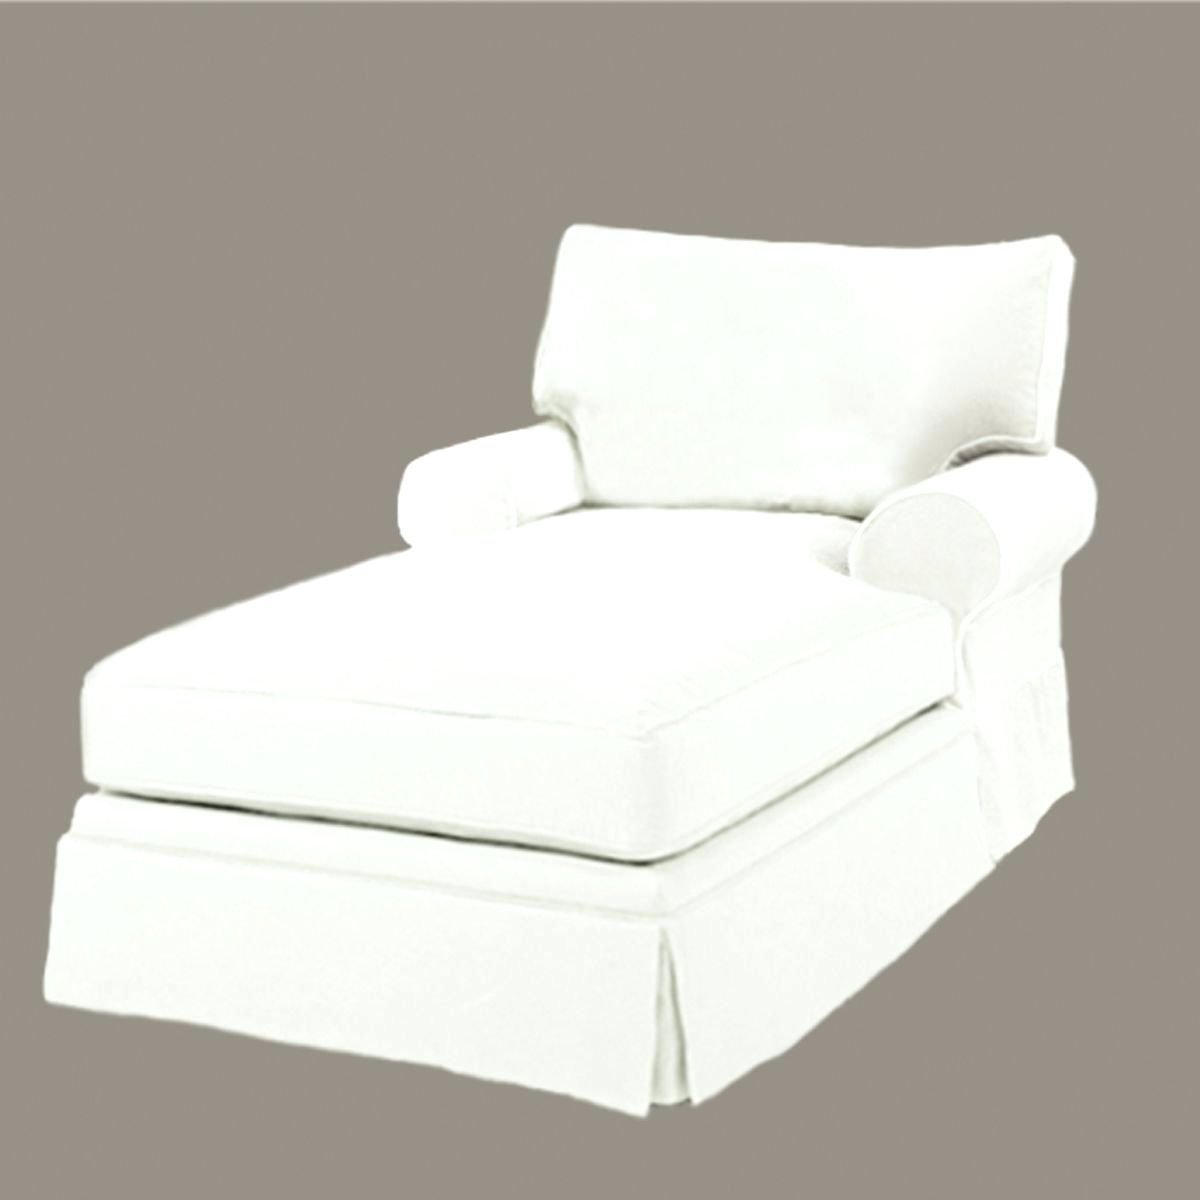 Most Recent Indoor Chaise Lounge Slipcovers Throughout Cover For Indoor Chaise Lounge Chair • Lounge Chairs Ideas (View 6 of 15)